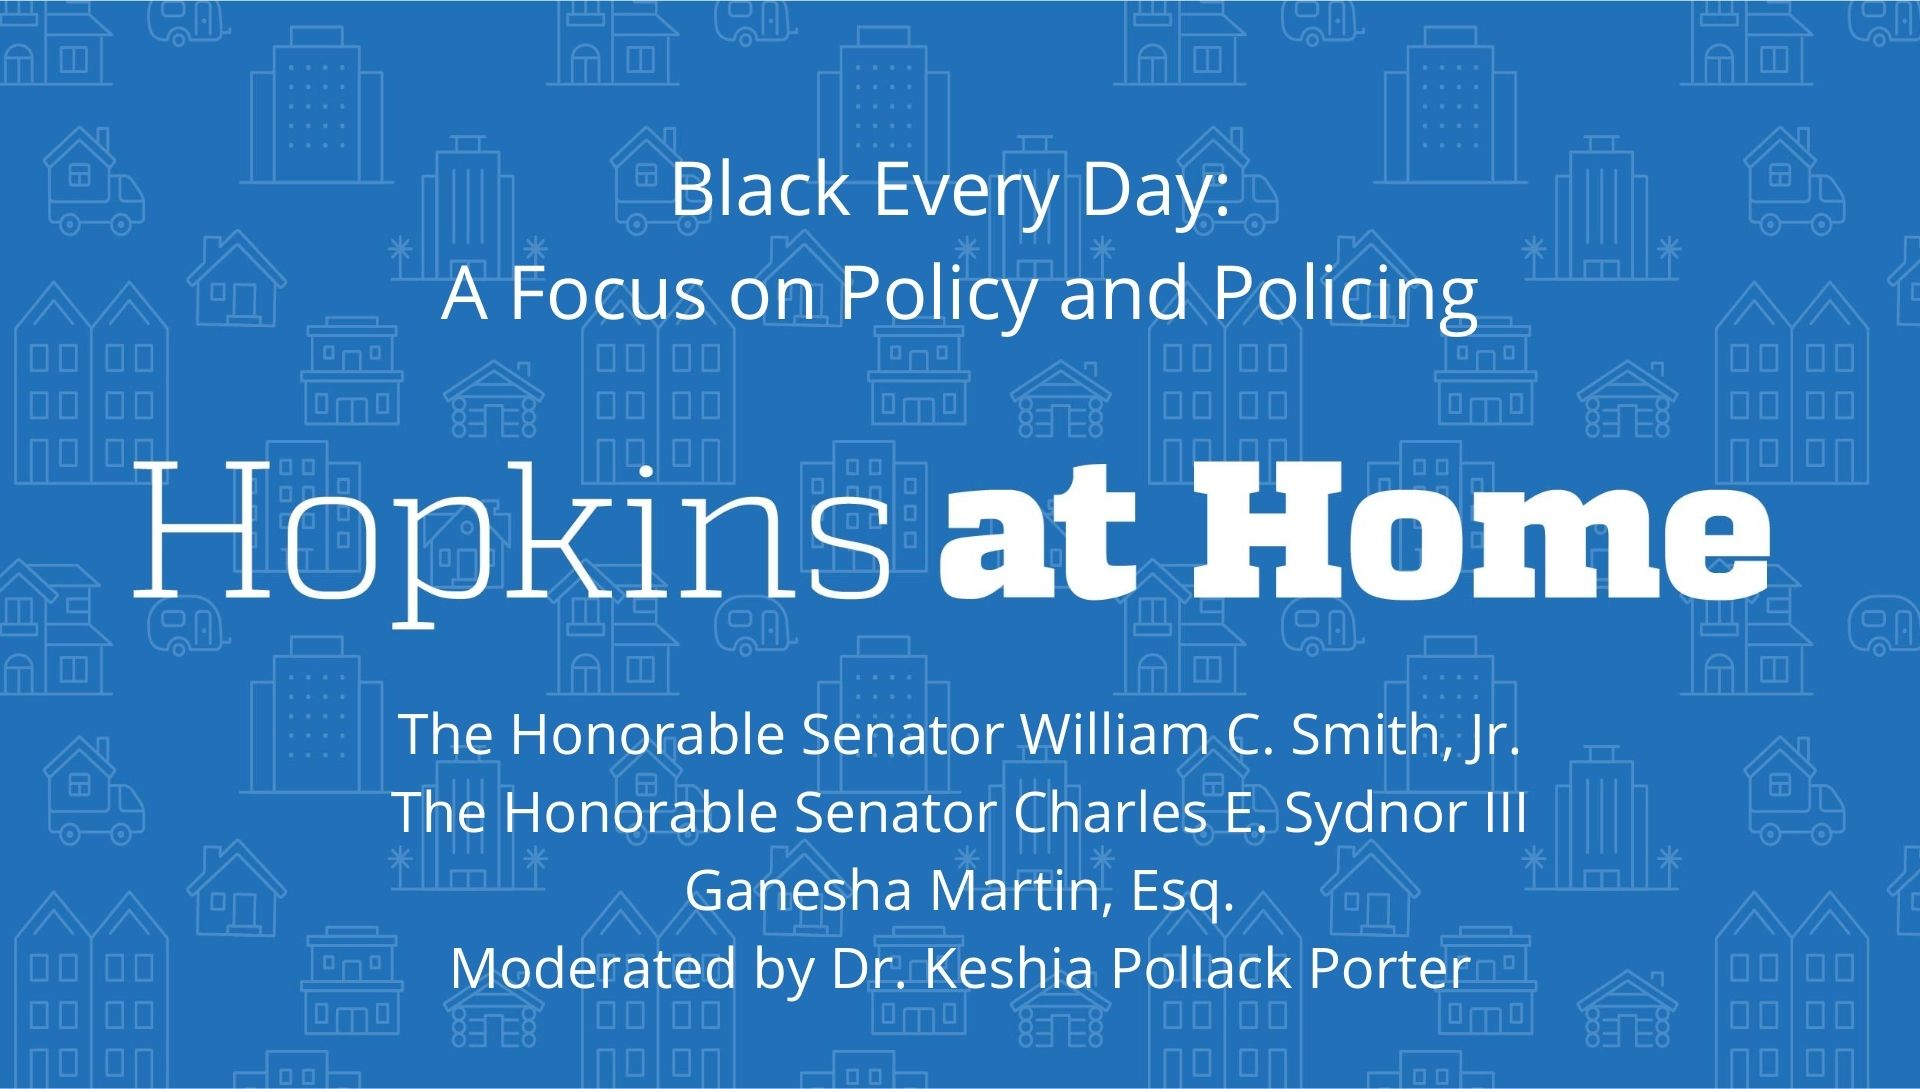 Black Every Day: A Focus on Policy and Policing header image